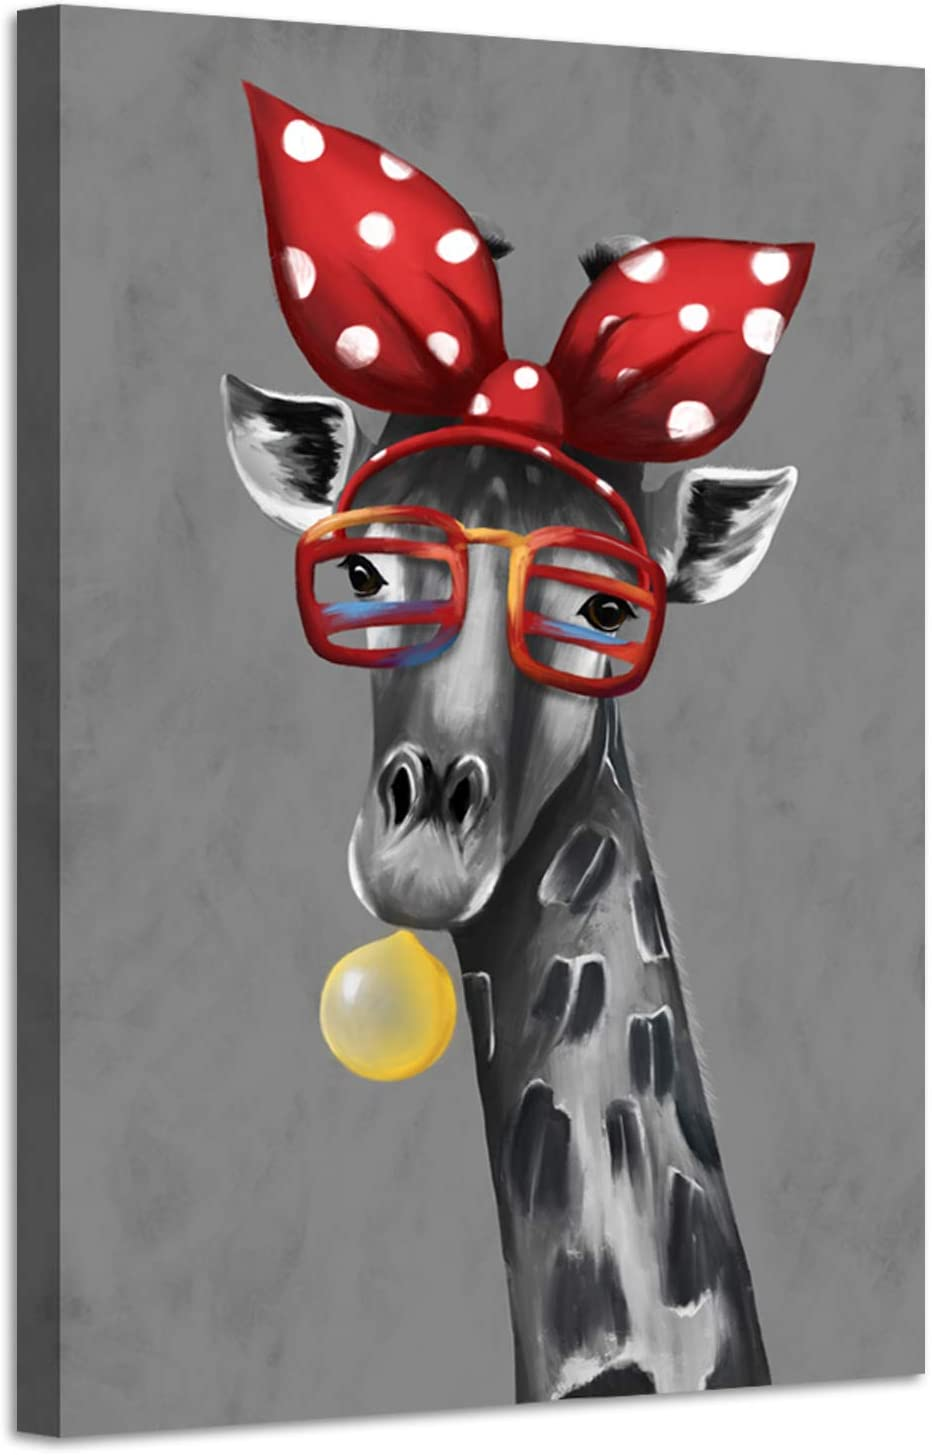 sechars - Modern Animal Art Funny Giraffe Bubble Gum Art Painting Abstract Canvas Art Stretched Frame Artwork for Wall Decor Kids Room Decor 24x36inch